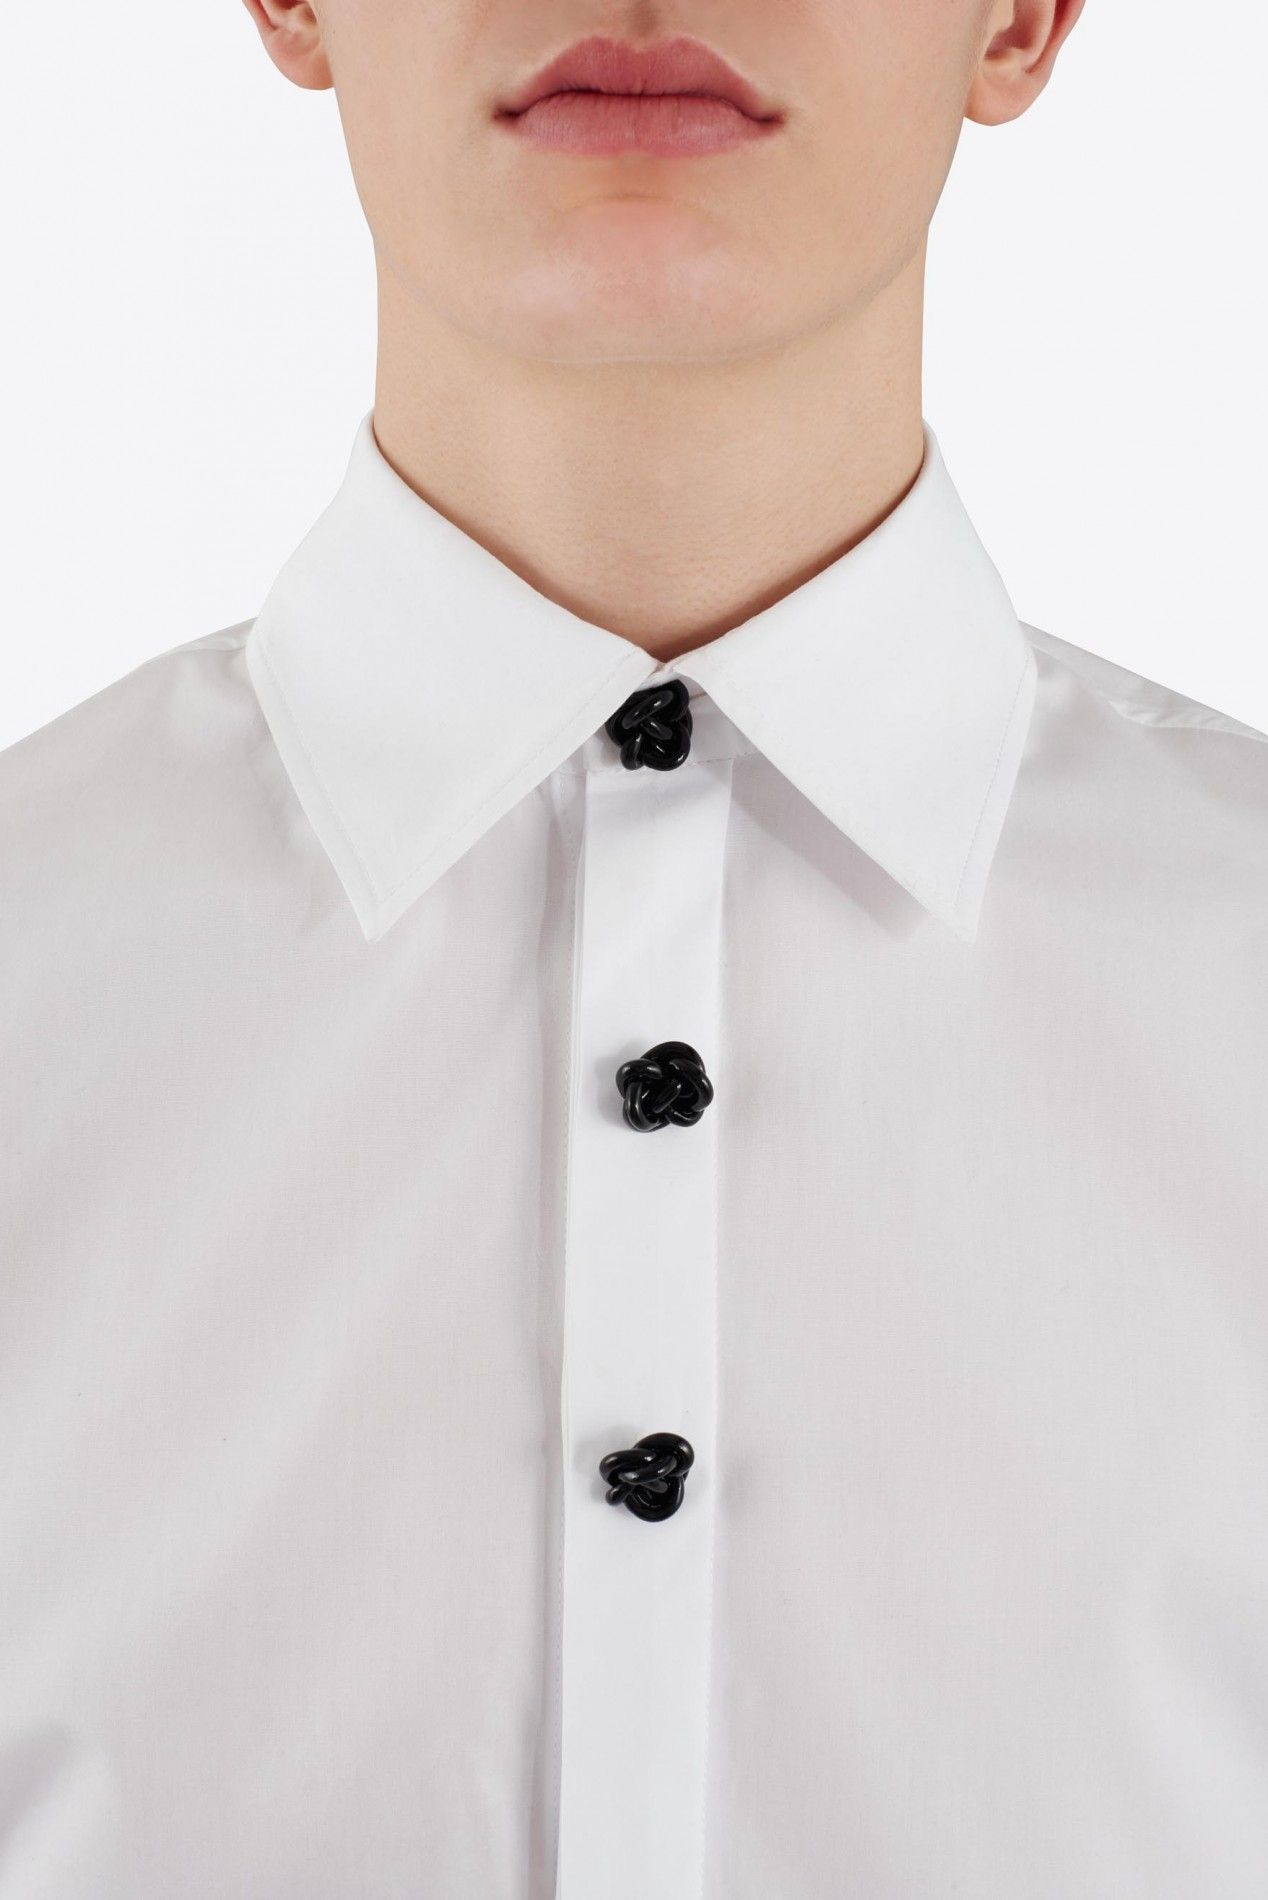 J W Anderson AW15 knot buttons